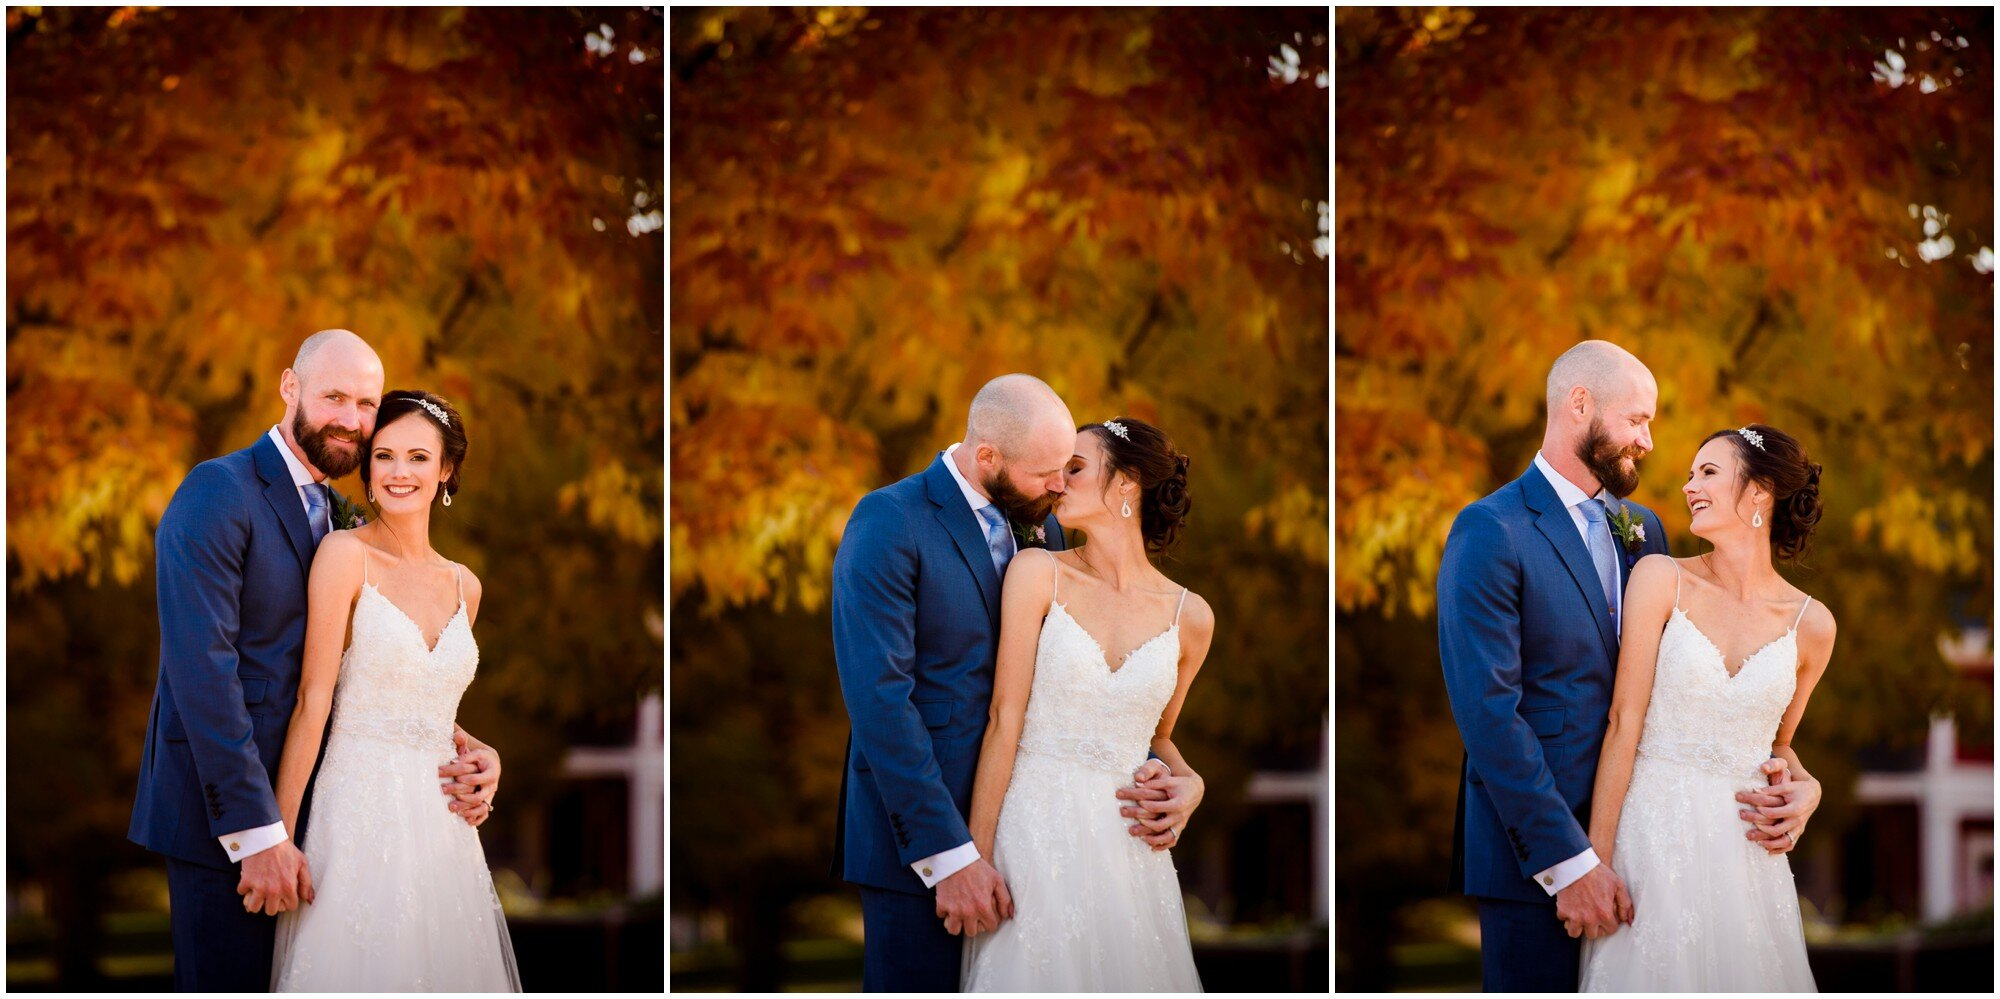 Fall Color photos with Bride and Groom